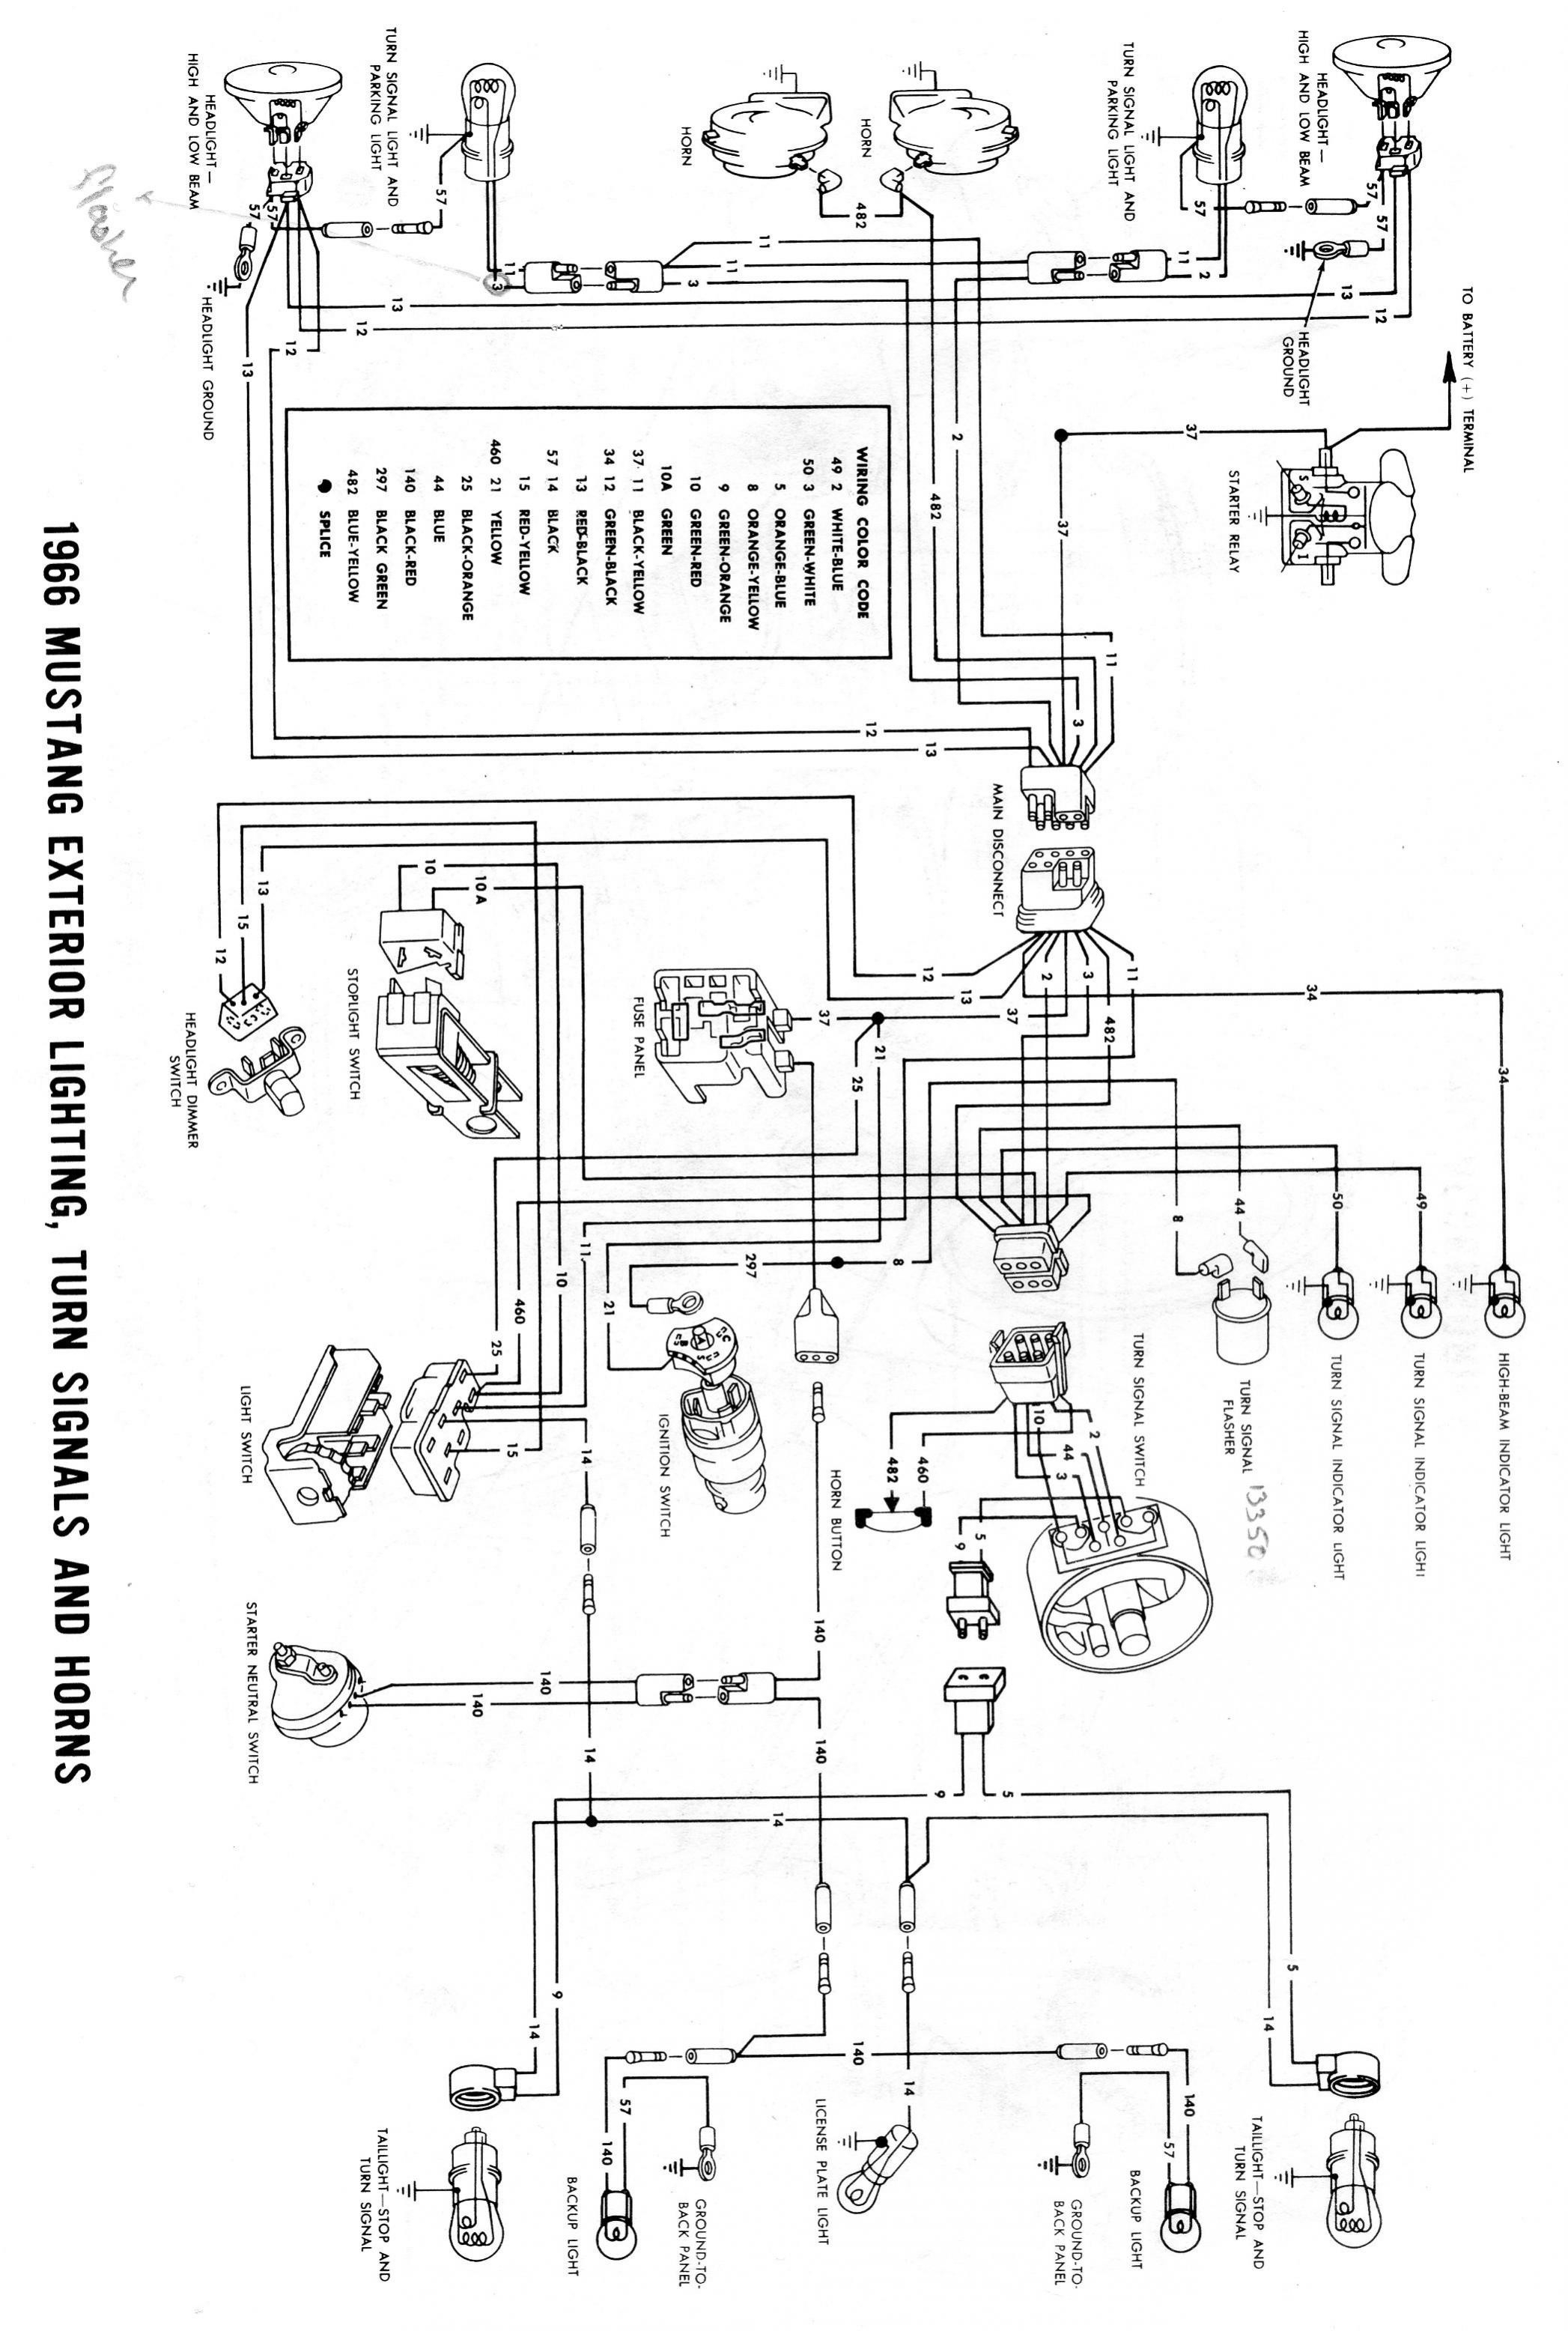 Mustang Alternator Wiring Diagram